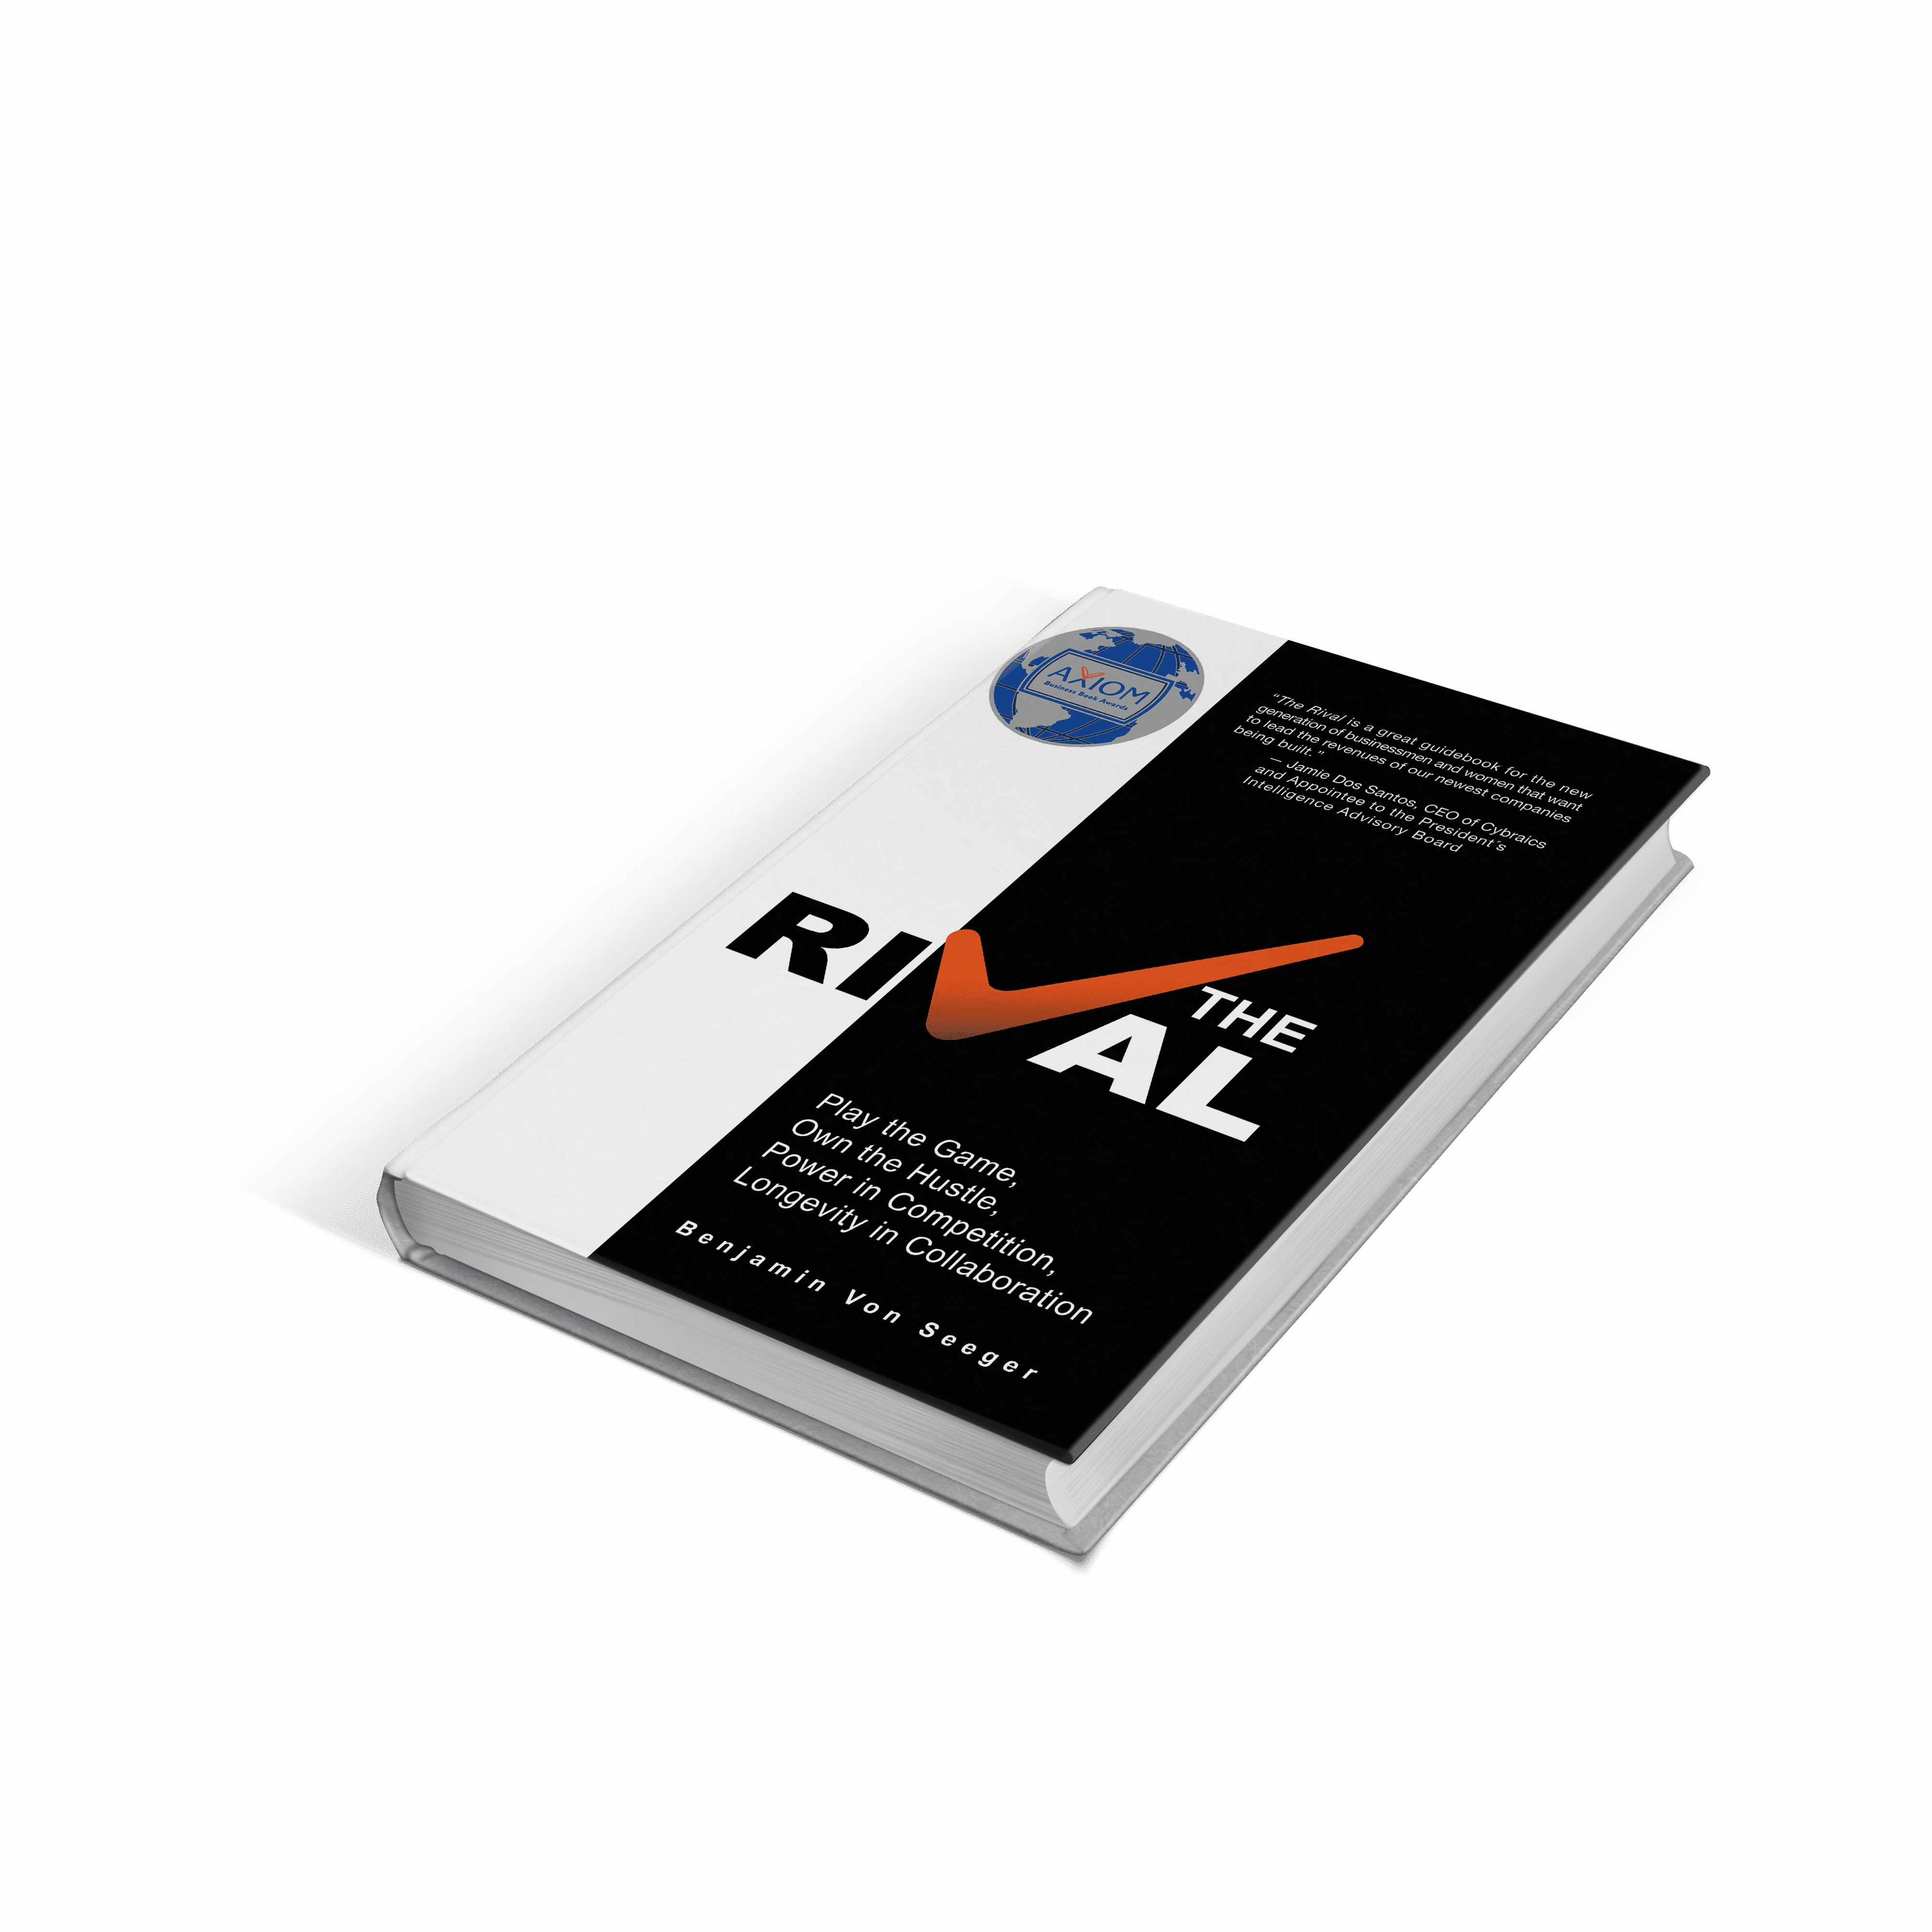 Book Cover Psd Mockup v1 1 1 - Play the Game. Own the Hustle. 'The RiVal' By Benjamin Von Seeger Is a Must-Read